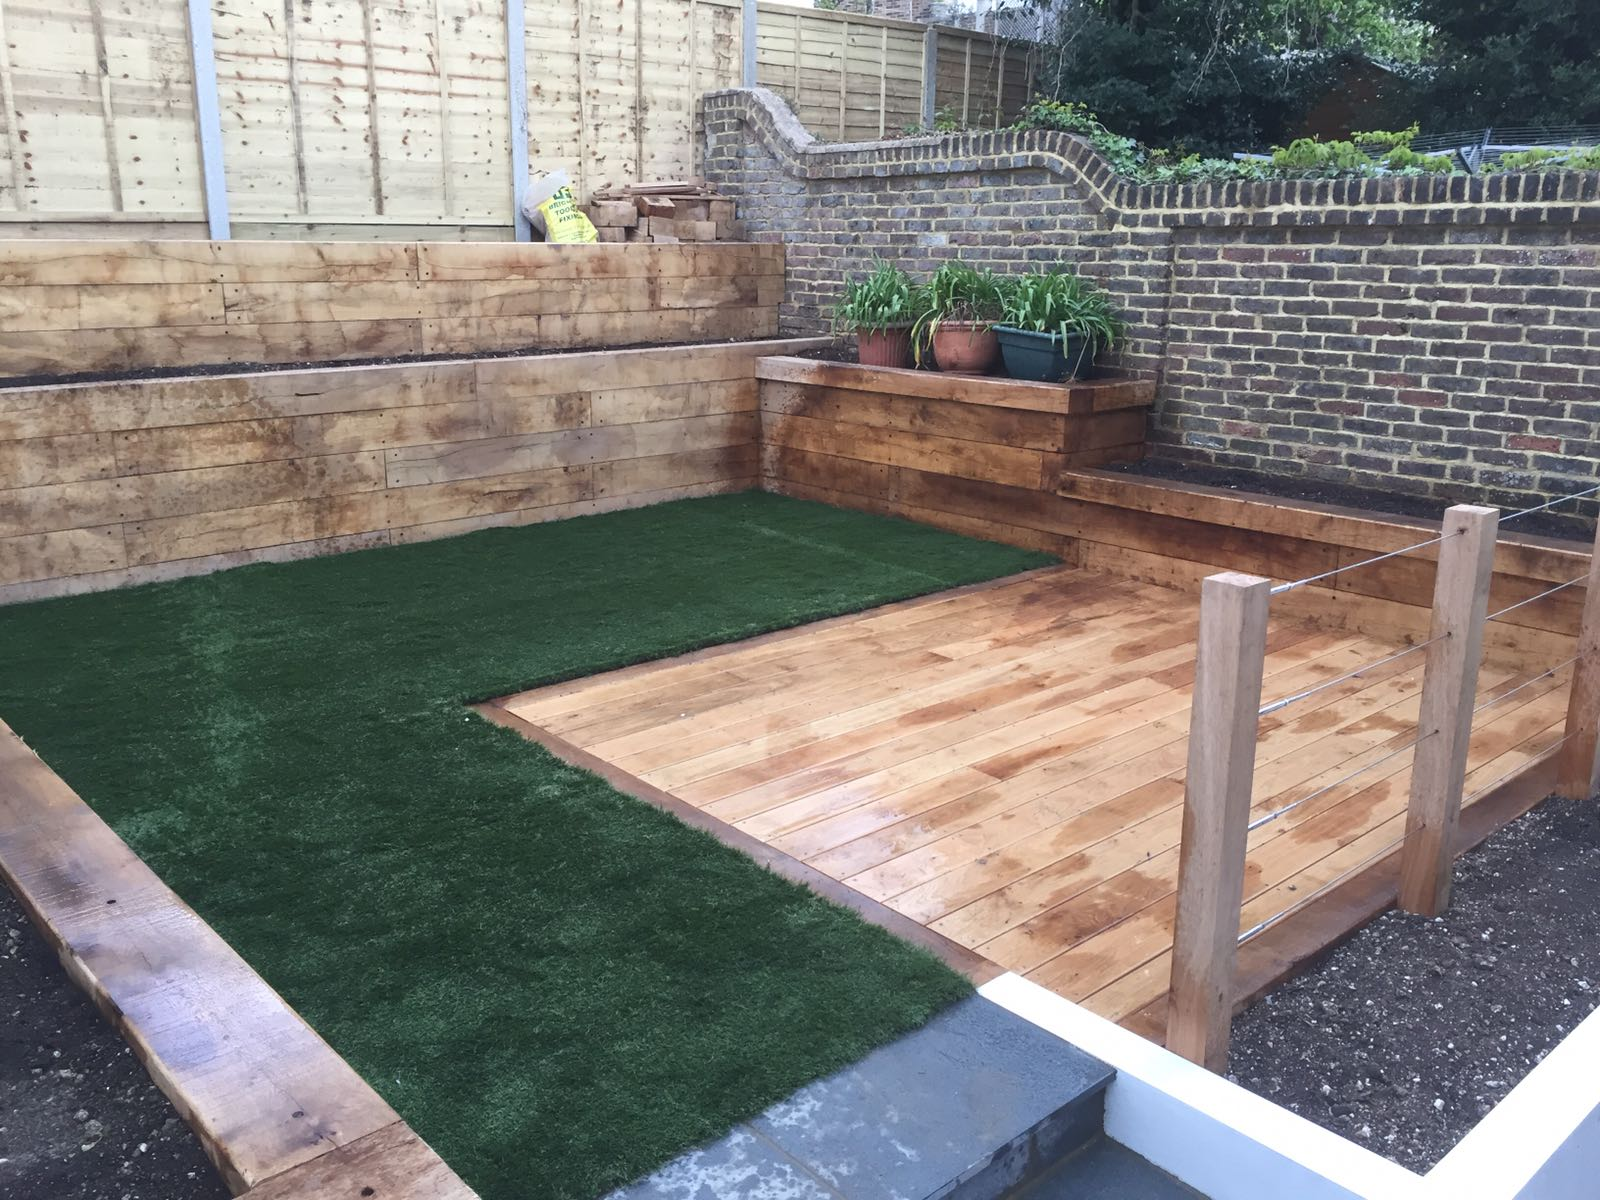 About AWL - We specialise in a range of hard and soft landscaping services and like to work closely with our clients in Brighton & Hove and around Sussex.Tell me more...